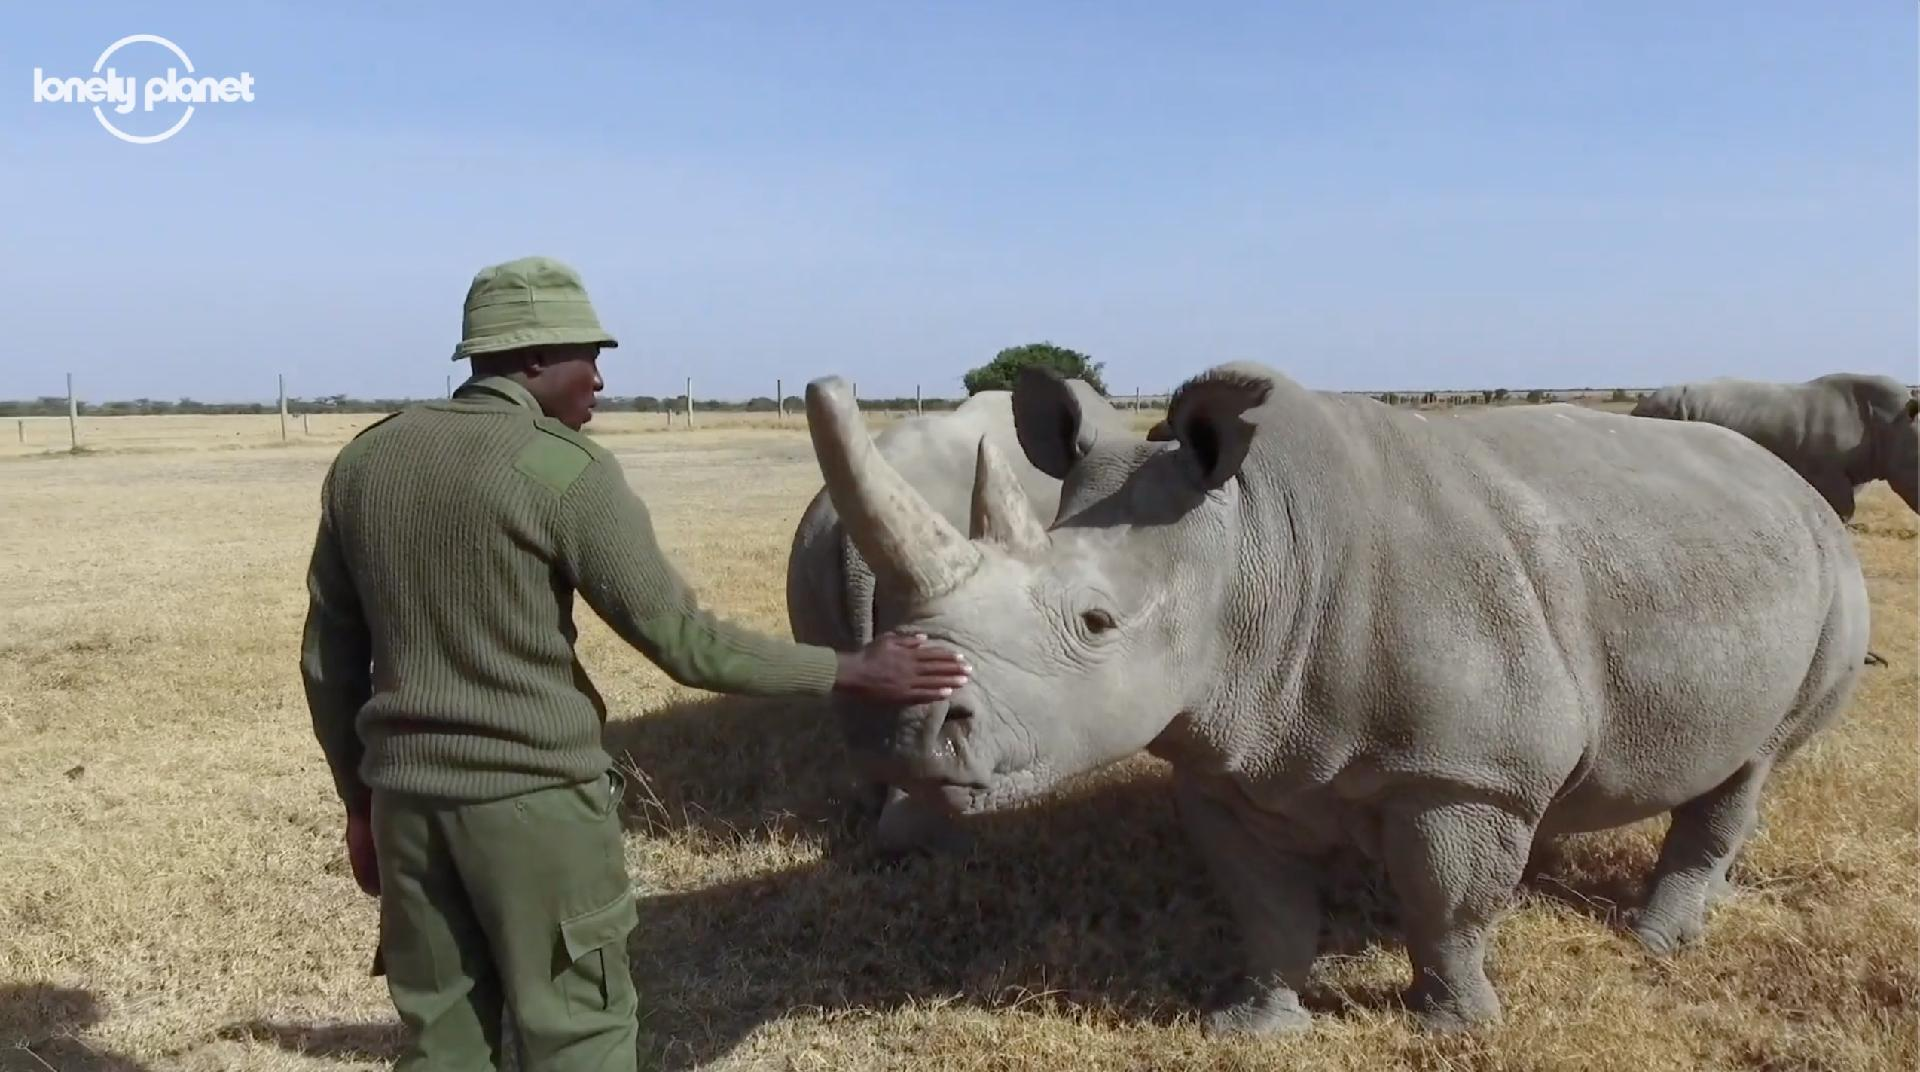 Saving the rhinos during Covid-19